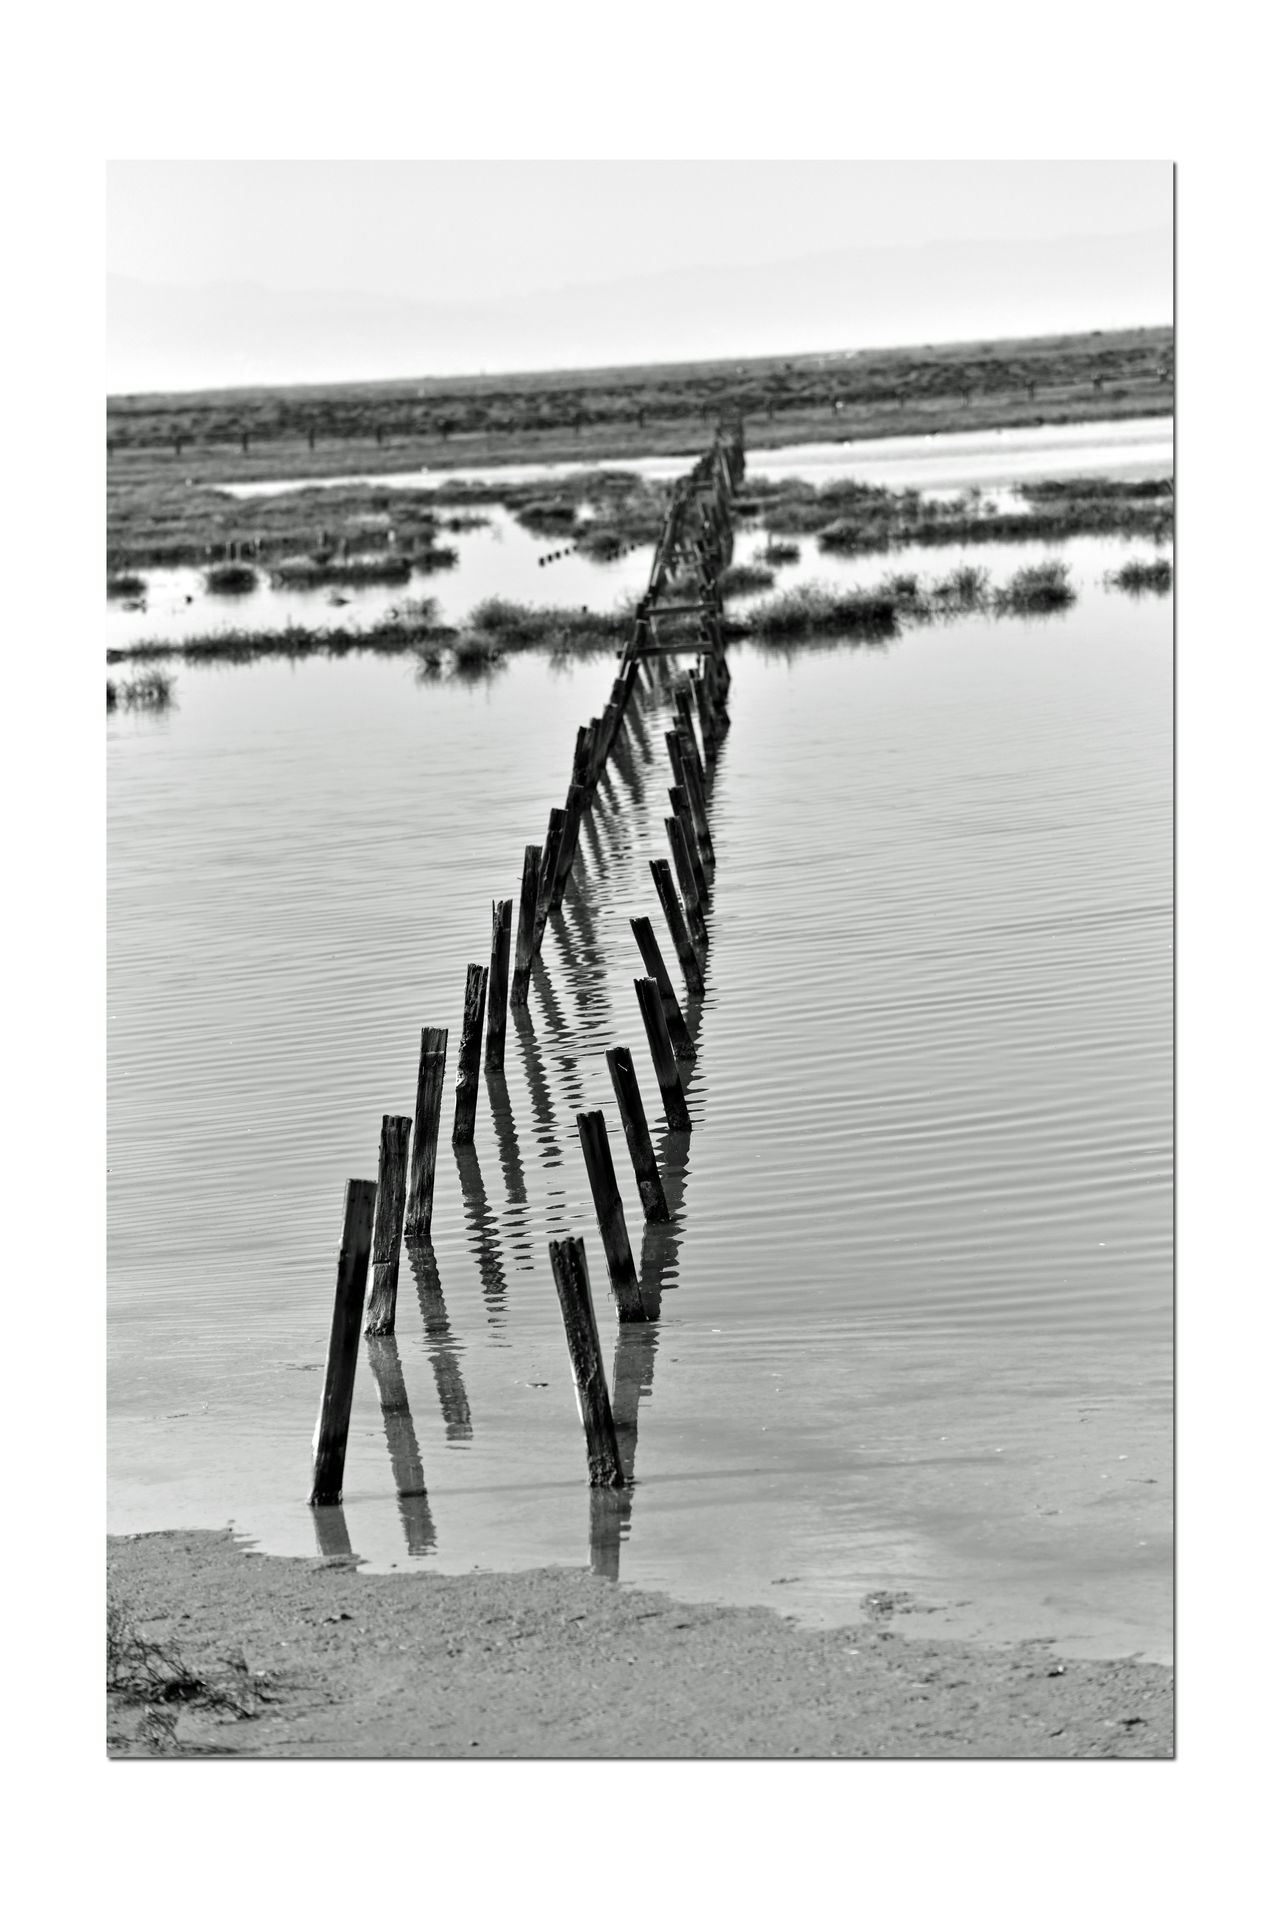 Stakes @ Edens Landing 2 Ecological Reserve Water Level Indicator Restored Marsh Tidal Marsh Bay Ecosystem Saltwater Wetlands Save The Bay Est 2003 South Bay Salt Ponds Restoration Project Birdlife Wildlife Habitat Bring Back Endangered Species California Dept Of Fish & Game Nature Nature_collection Nature Photography Black And White Black And White Photography Black And White Collection  Reflections Landscapes With WhiteWall Chromosome Likeness